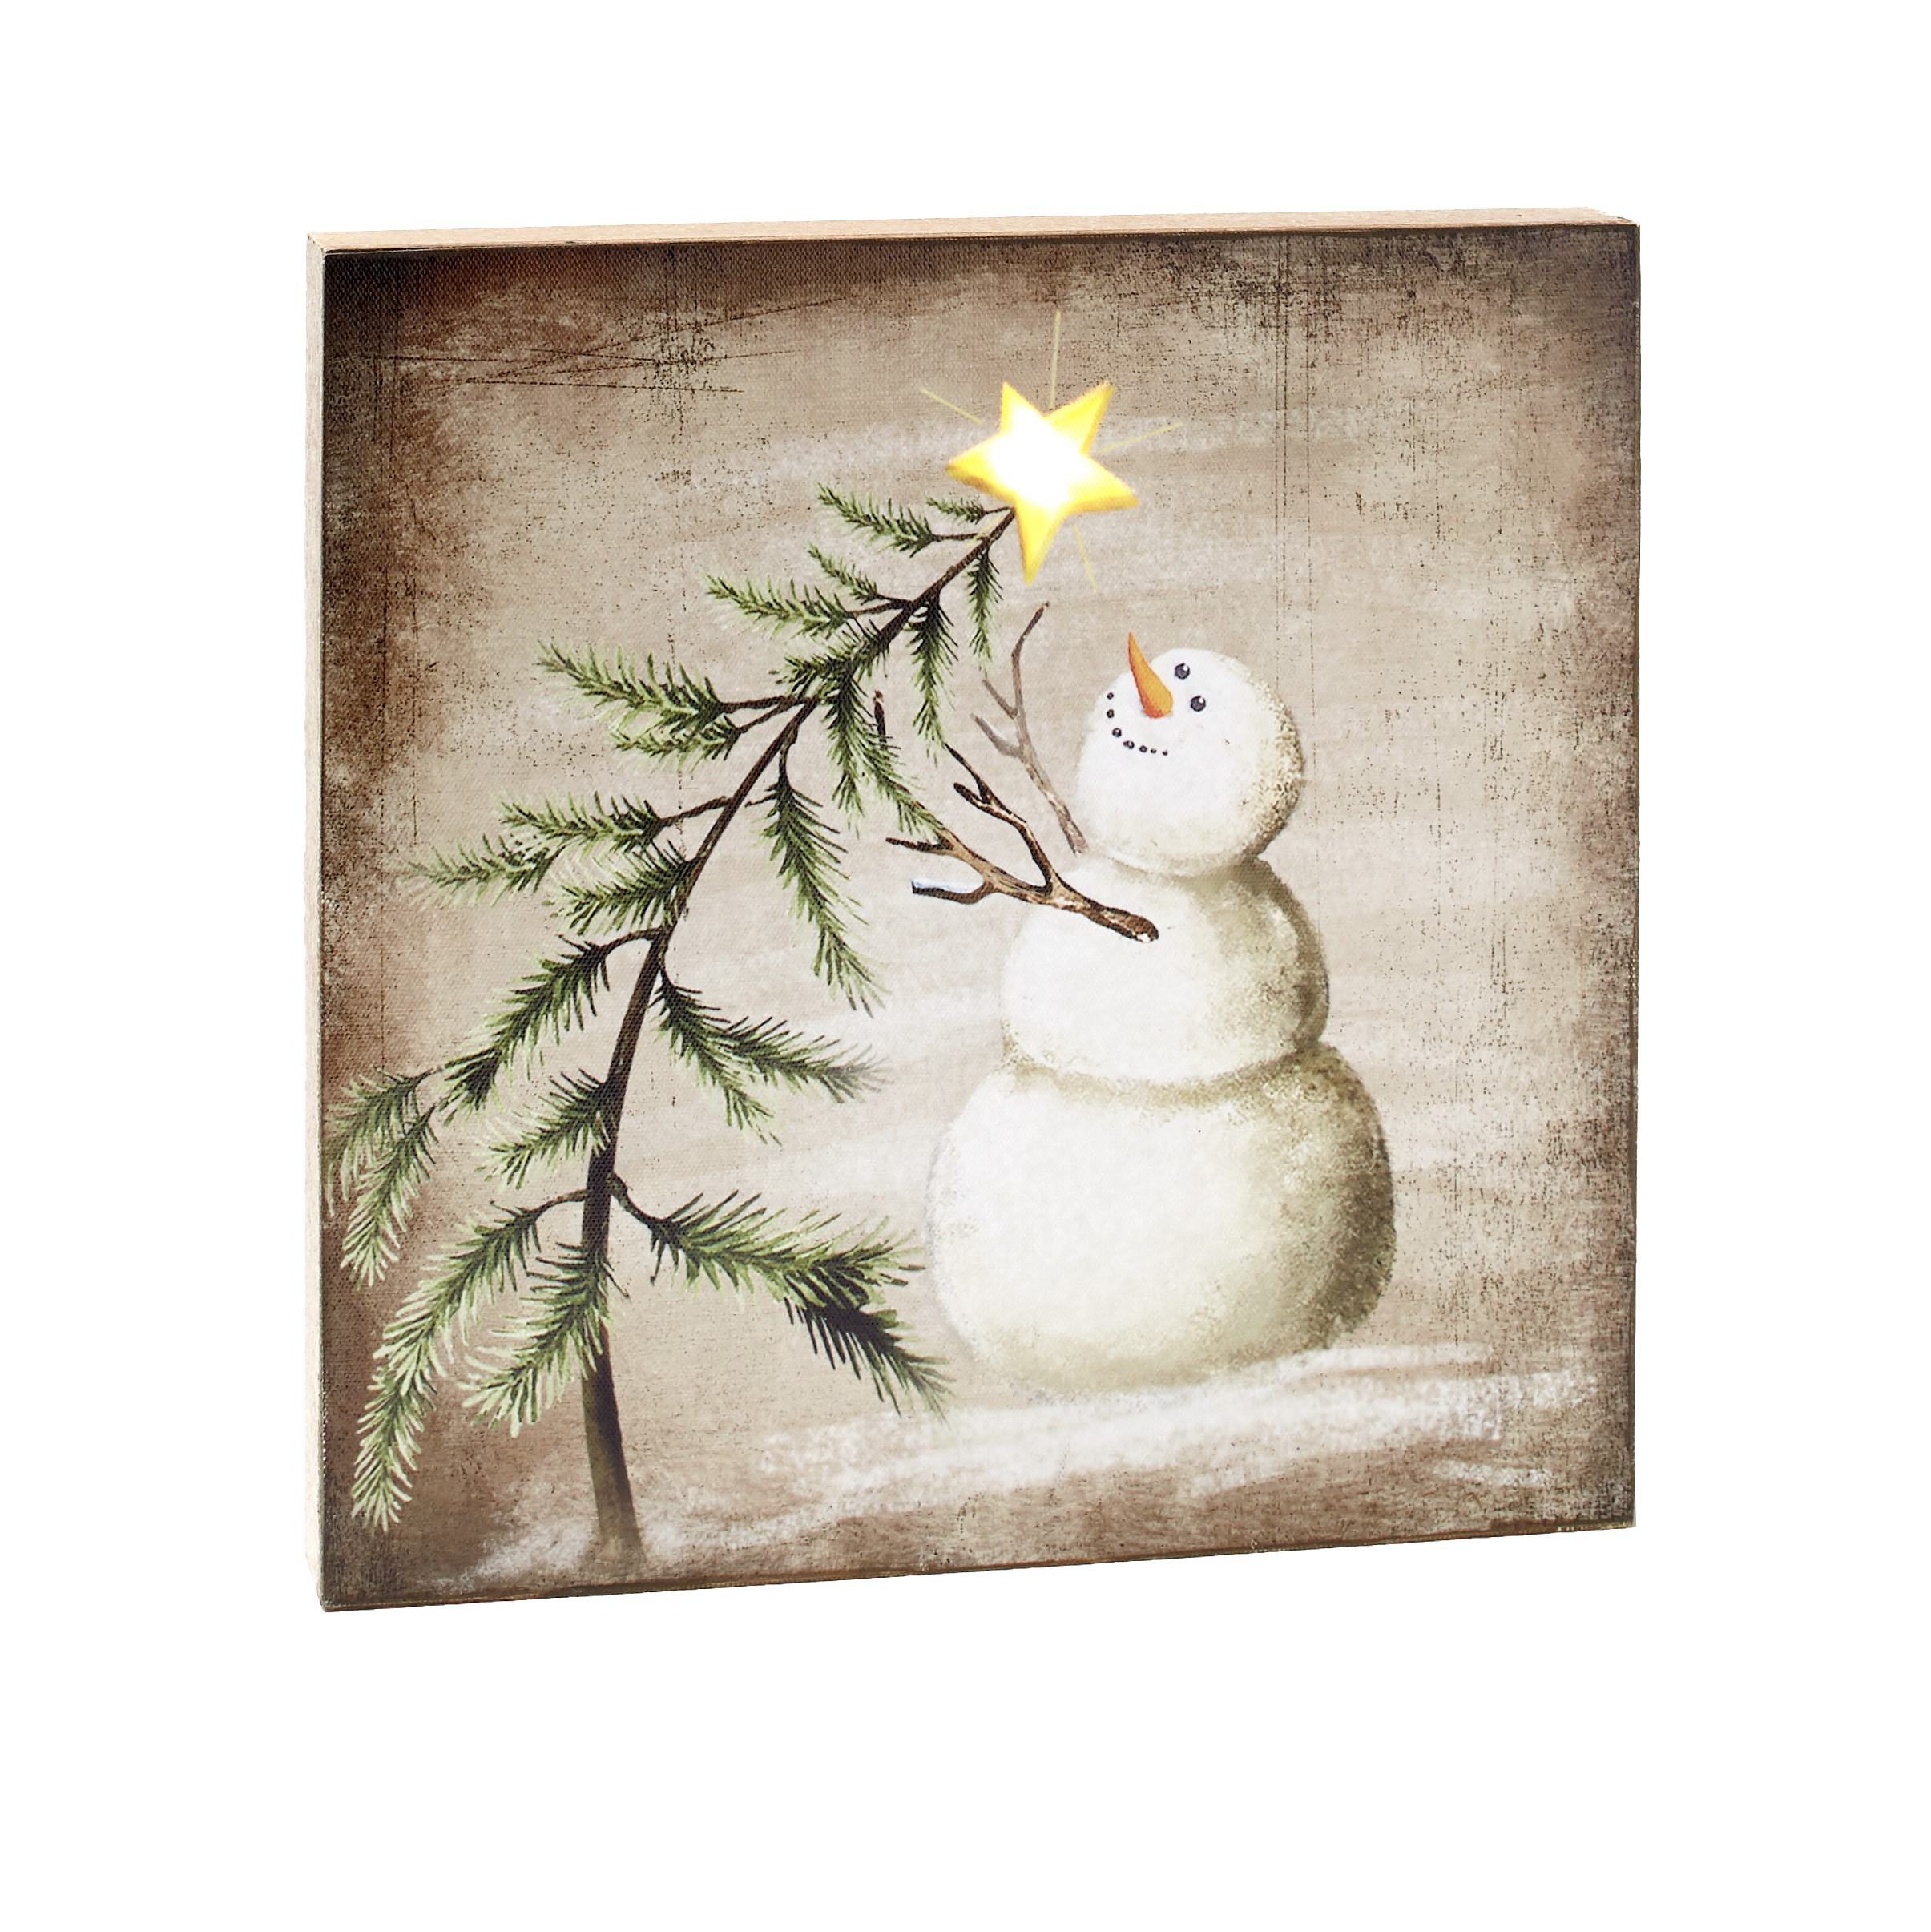 Lighted Winter Holiday Canvas Wall Art With Snowman Wishing On A Star Ebay